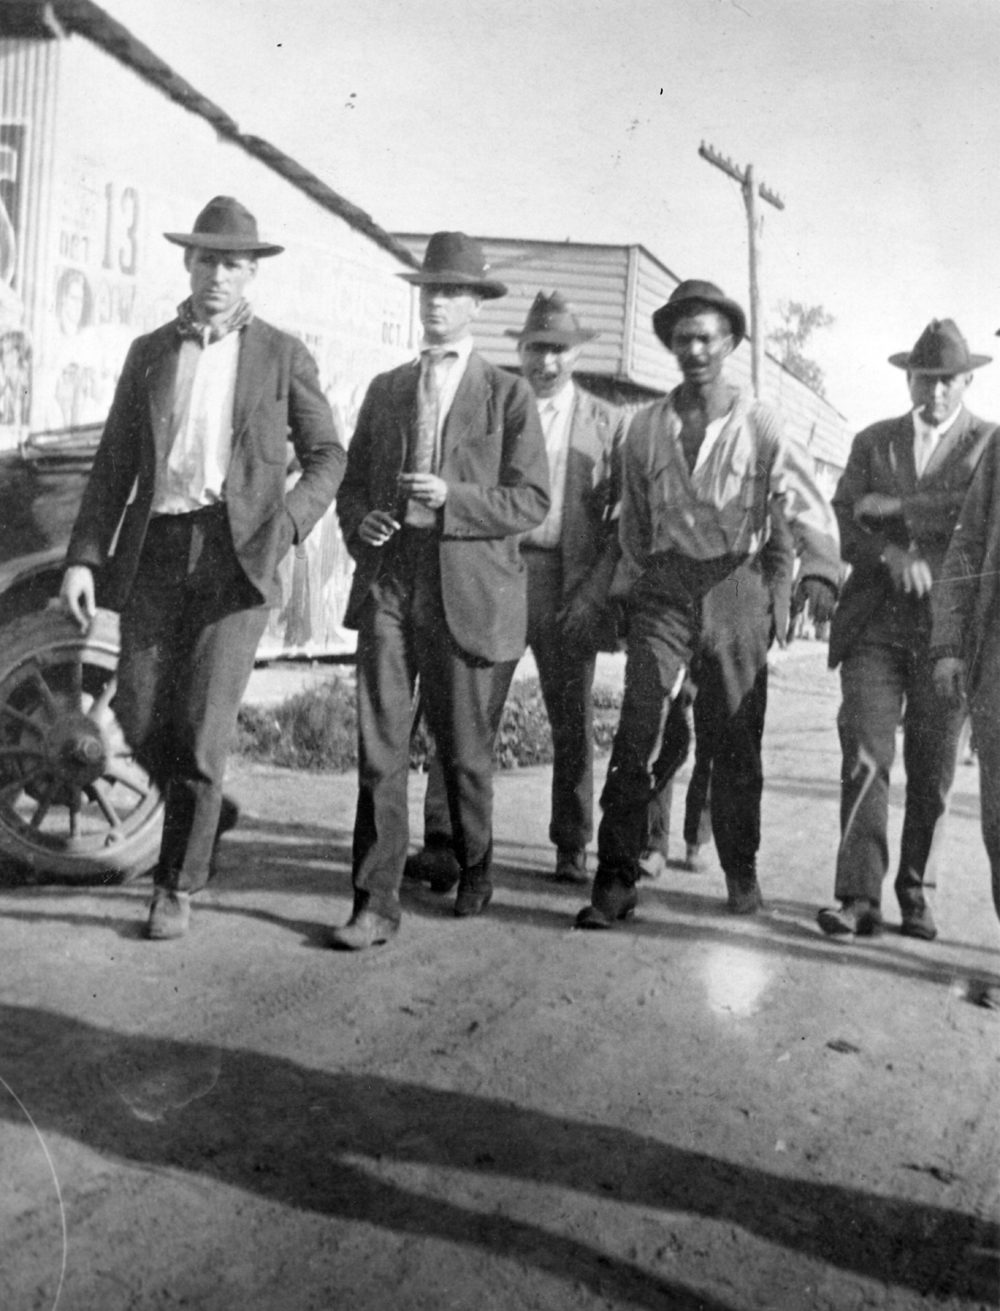 A black Elaine resident is escorted through the city. (Courtesy of the Arkansas State Archives.)